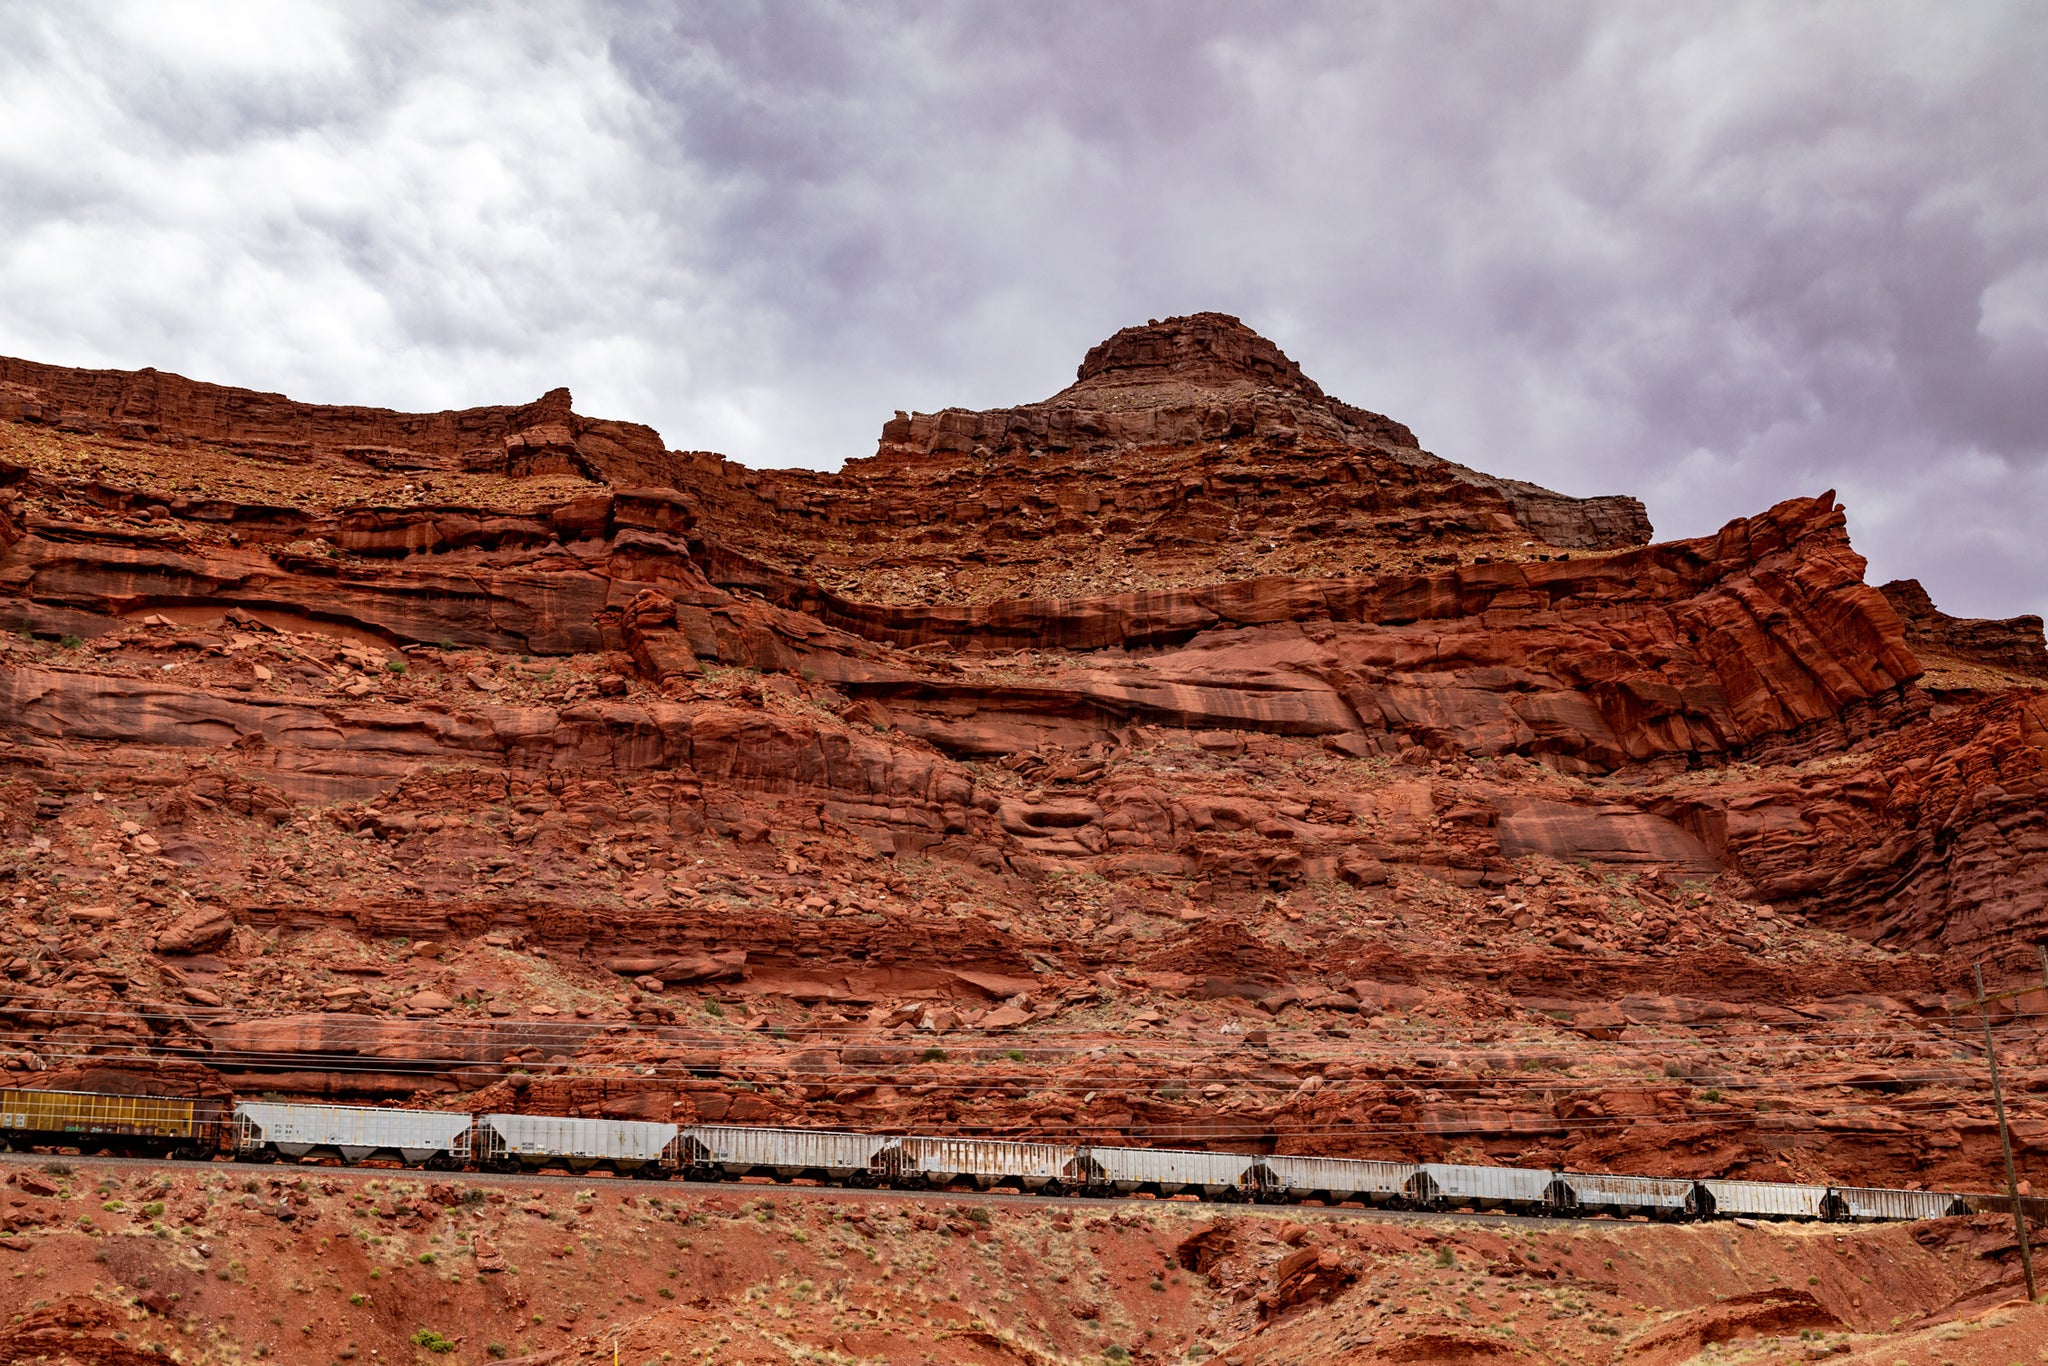 Train and Red Rocks near Arches in Utah